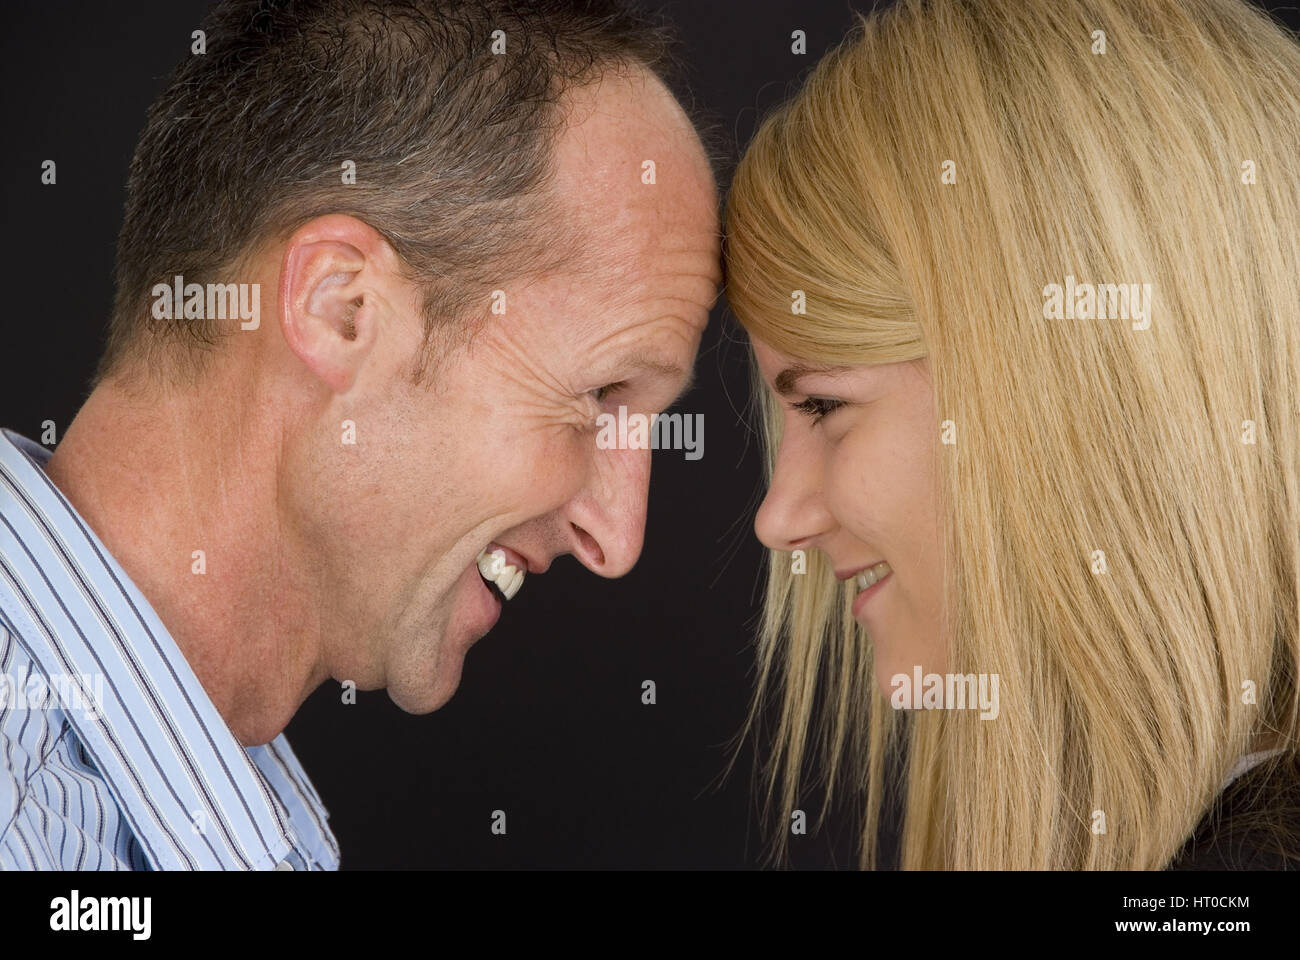 Vater und Tochter - father and daughter Stock Photo